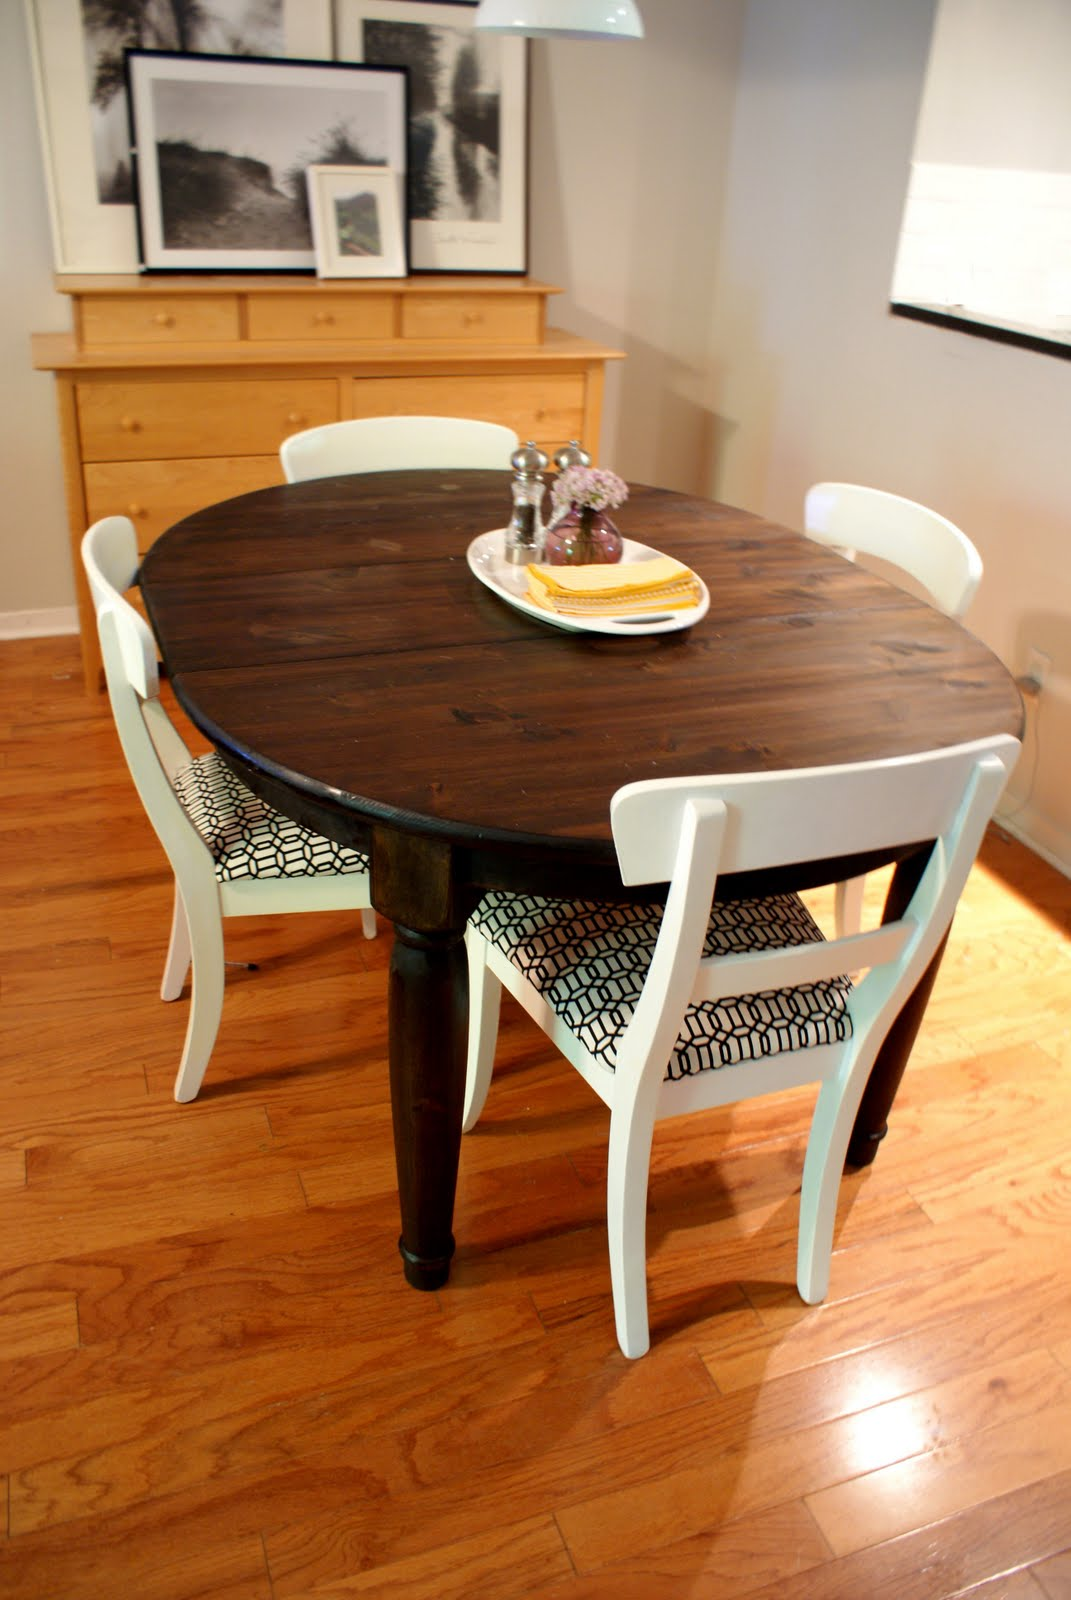 Thrifty little blog budget breakdown dining table and chairs - Refinished kitchen tables ...